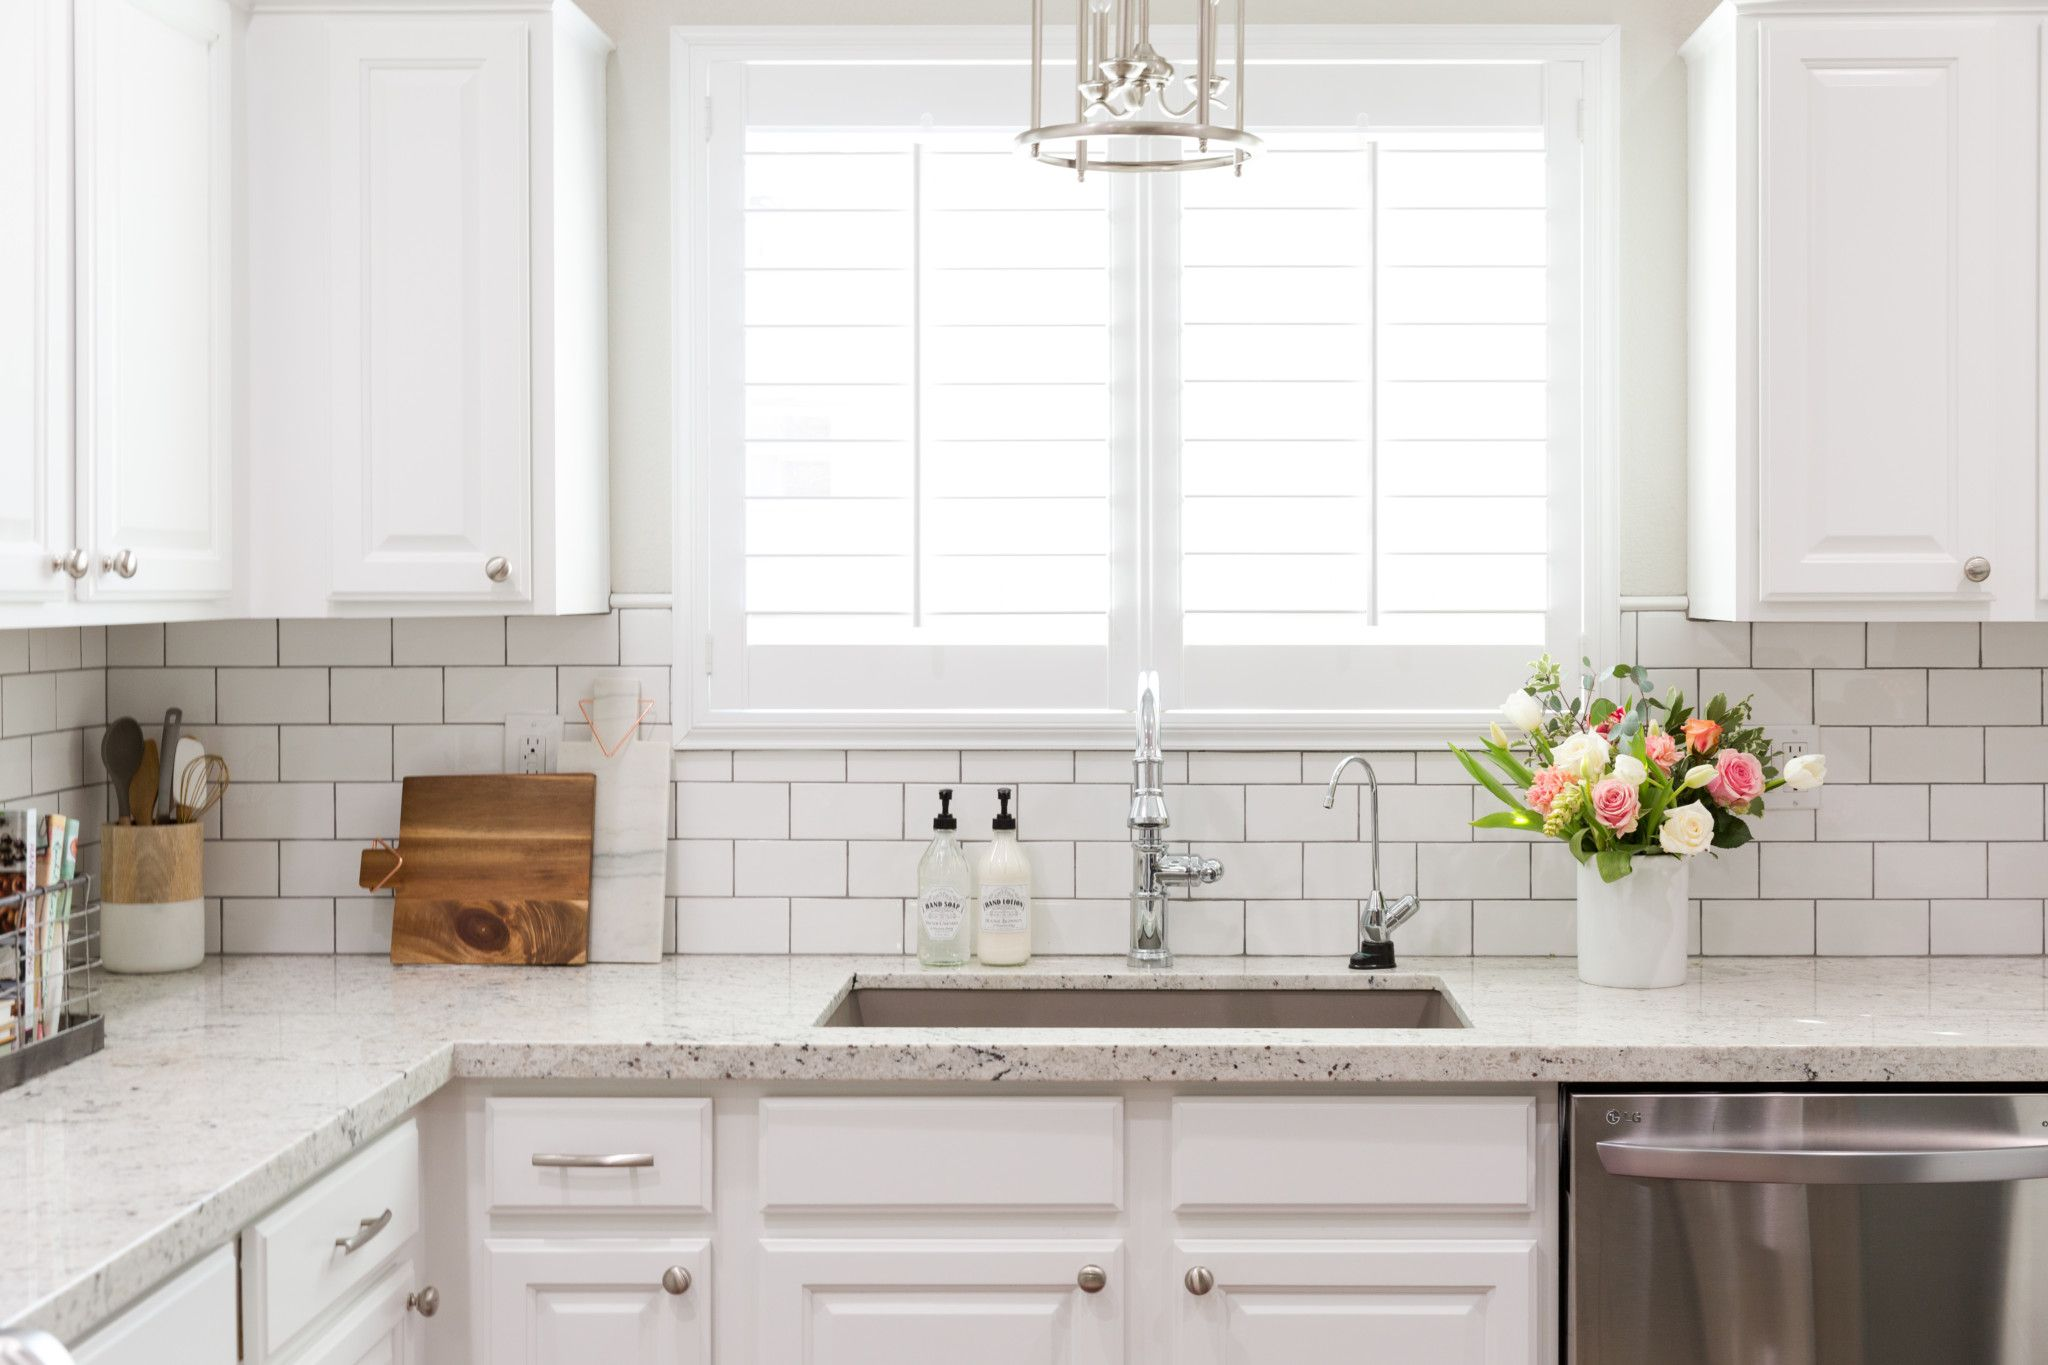 regarding of kitchen tiles subway own home marvelous your hilinkatoosan